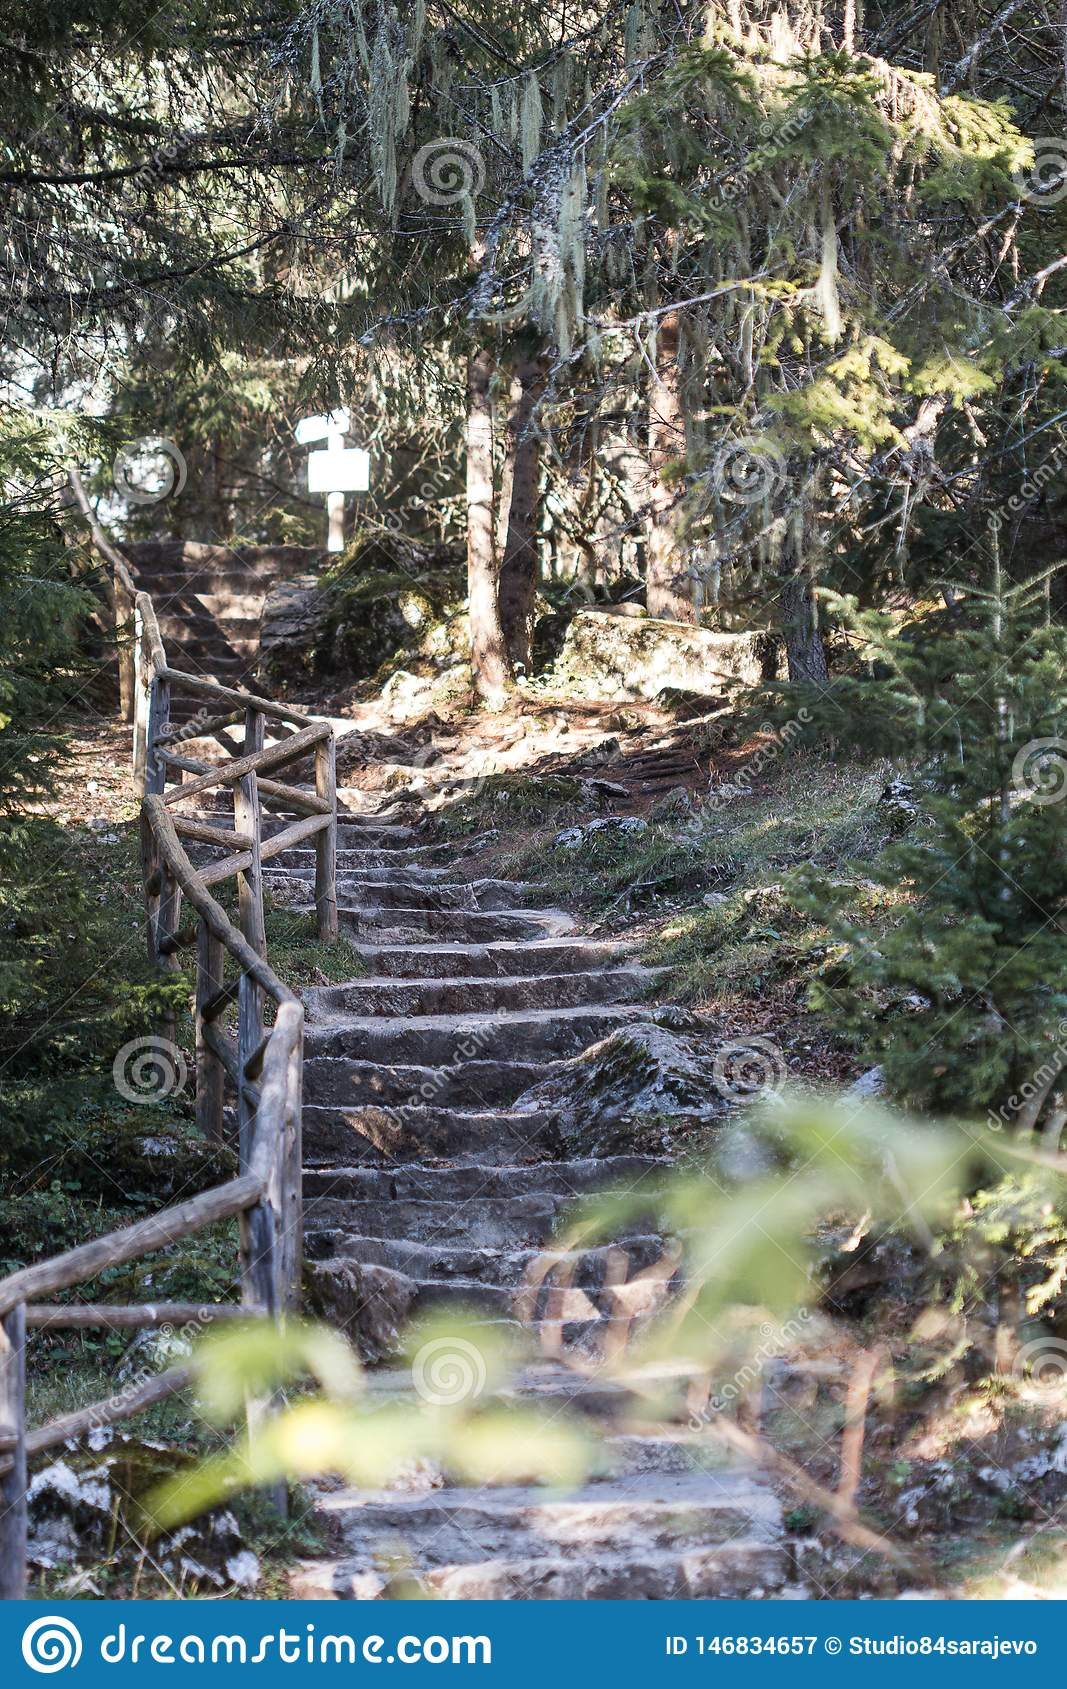 Manmade Stone Stairs in the Forest